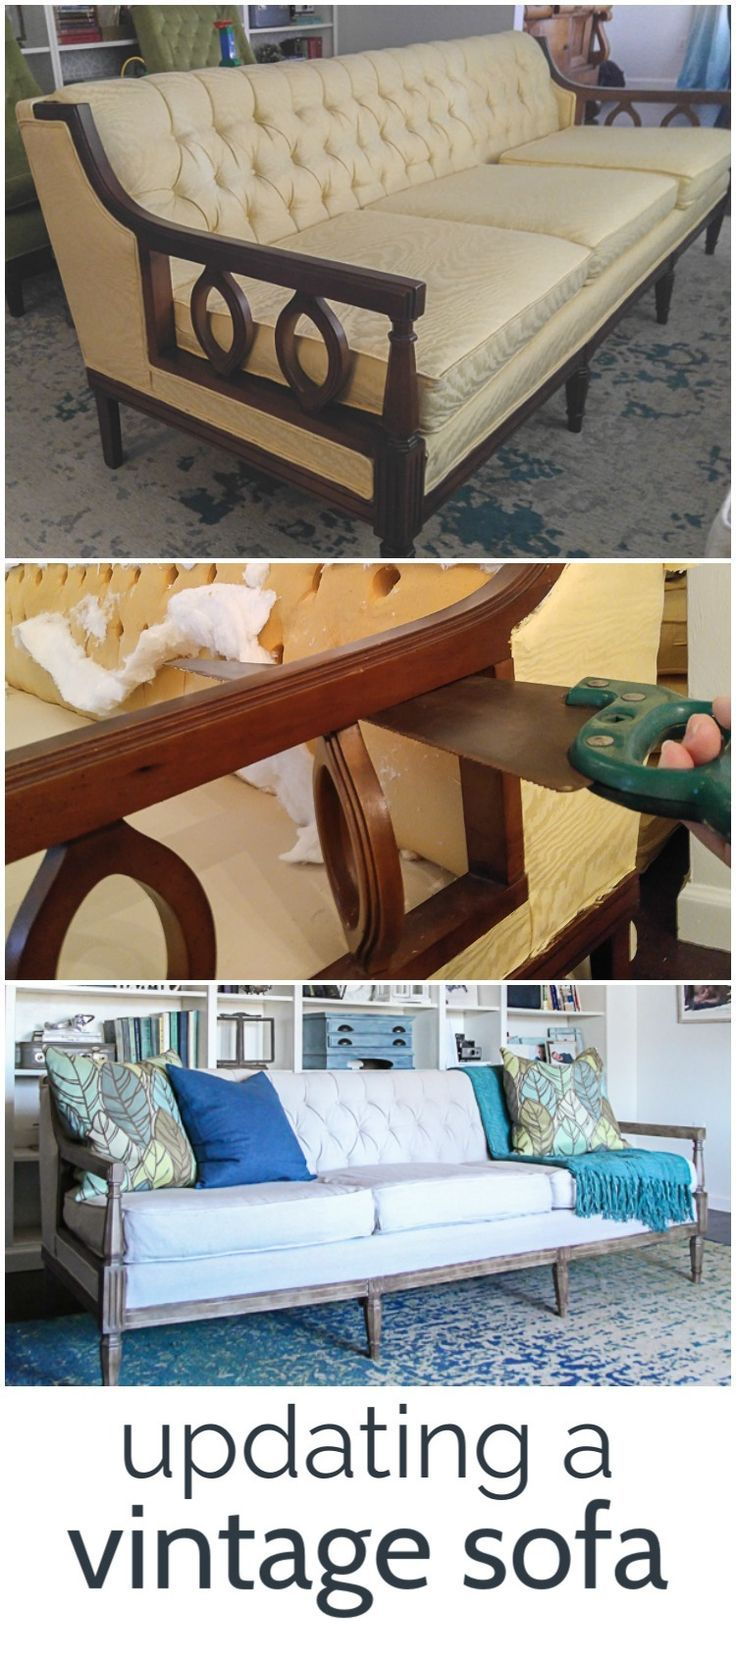 How To Reupholster A Couch On The Cheap Lovely Etc Vintage Sofa Wooden Sofa Wooden Couch